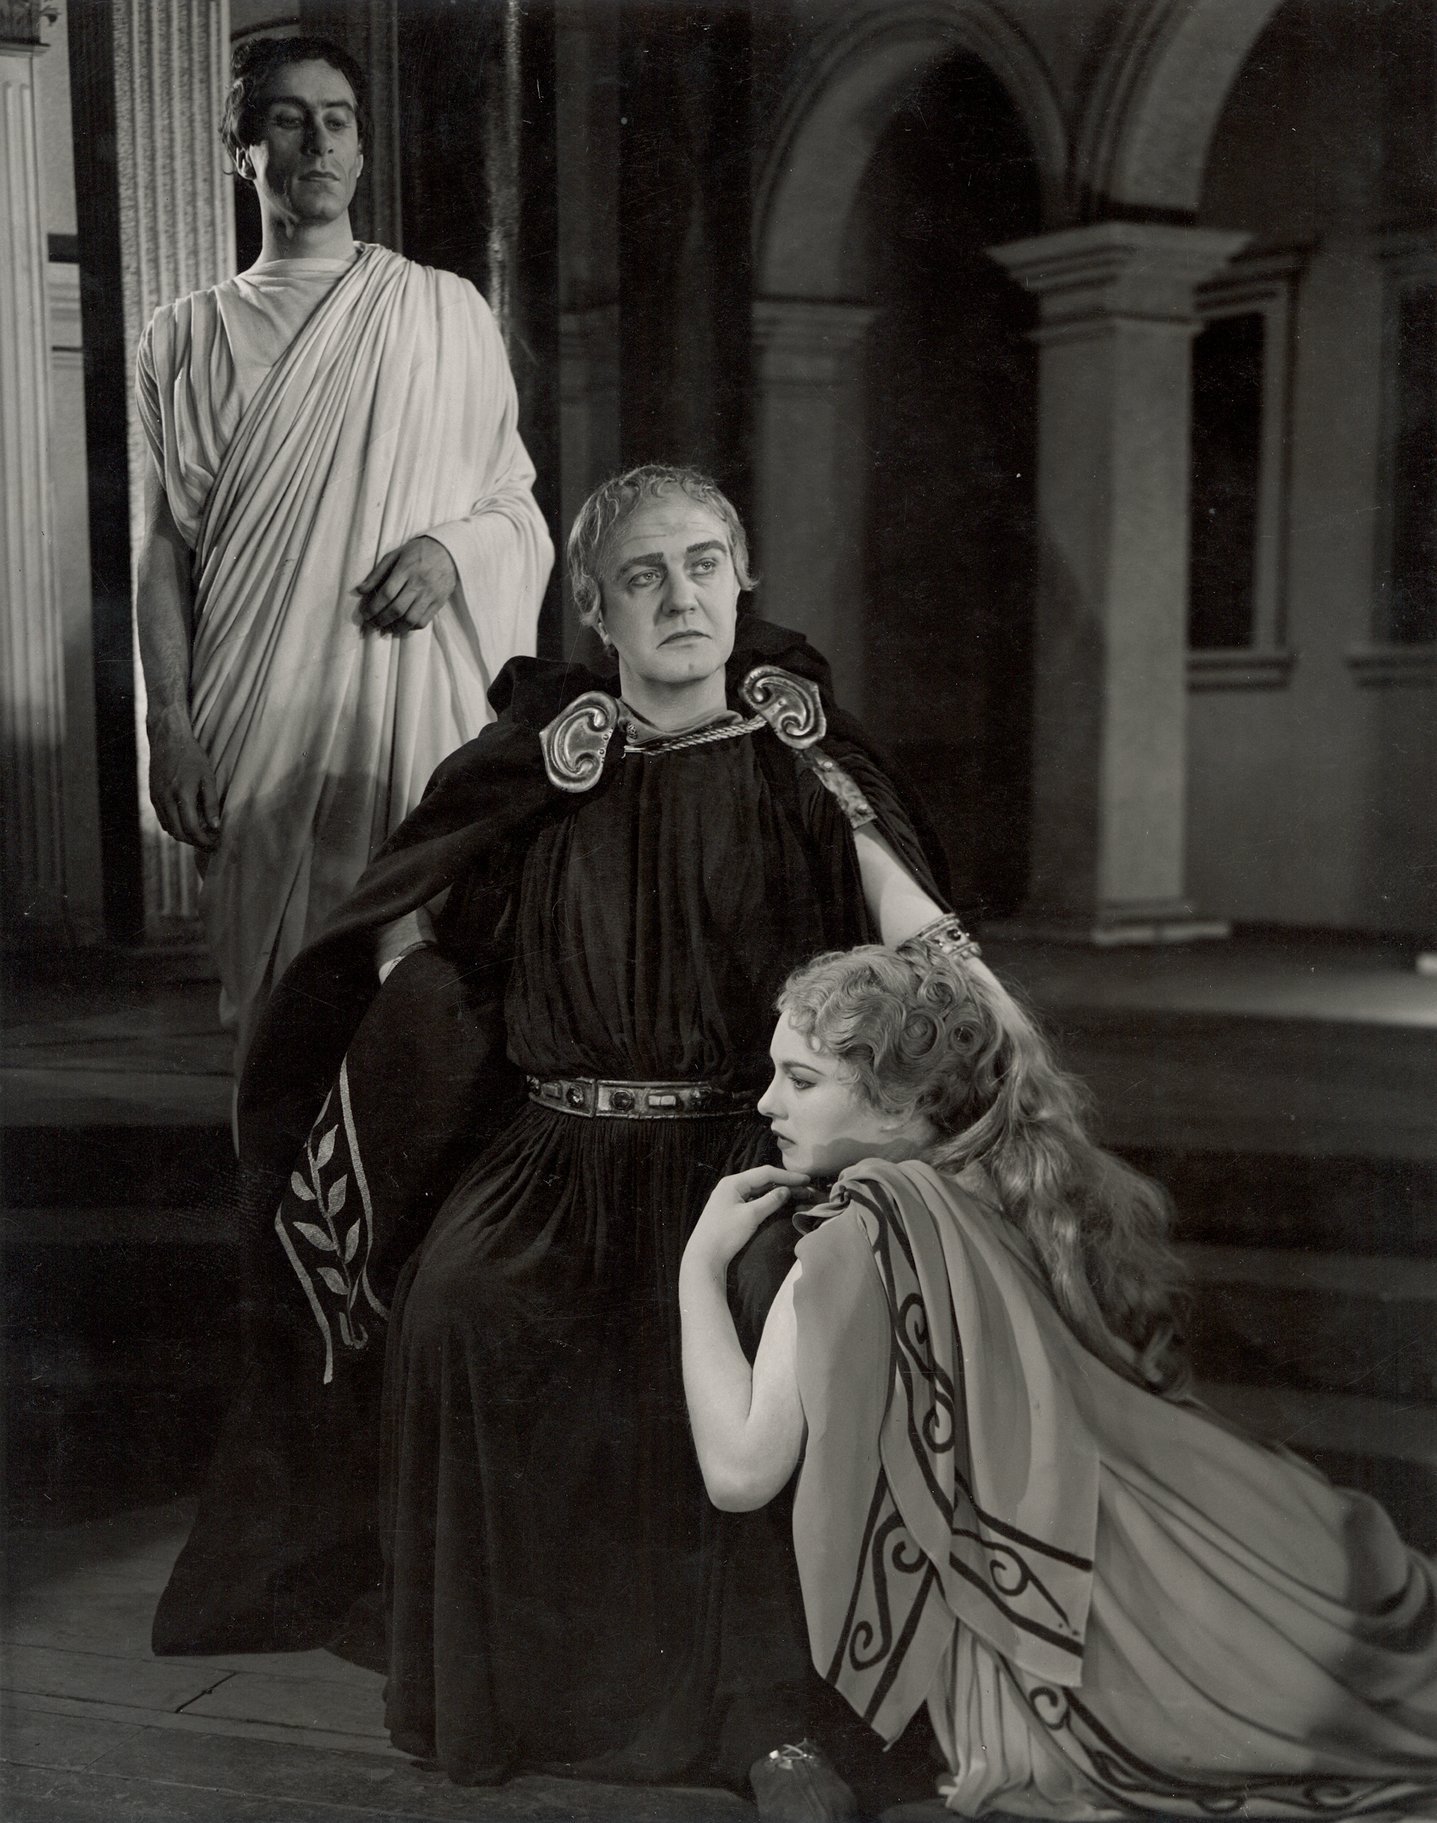 Calphurnia draping herself over Caesar and clinging to his leg while he sits in state with Decius Brutus behind him in a toga in the 1950 production of Julius Caesar.